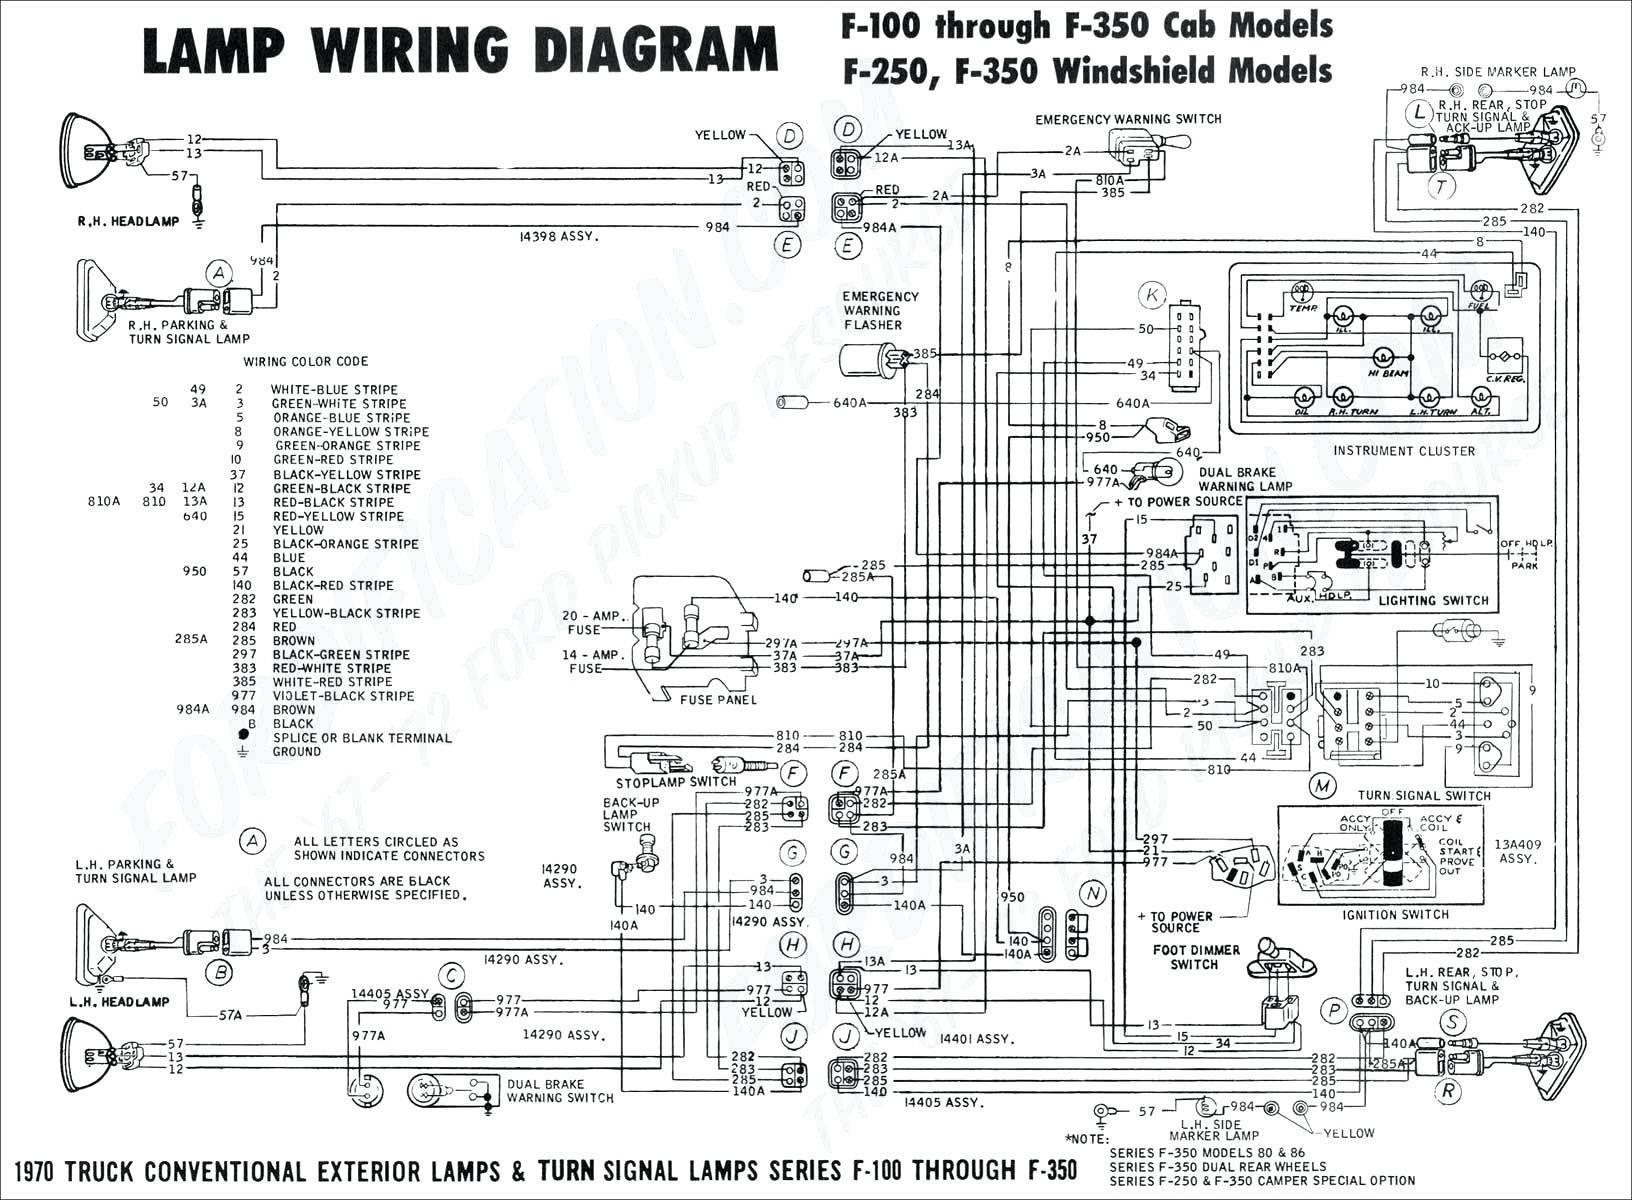 Alarm Wiring Diagrams for Cars Wiring Diagram for Alarm System Inspirationa Alarm System Wiring Of Alarm Wiring Diagrams for Cars